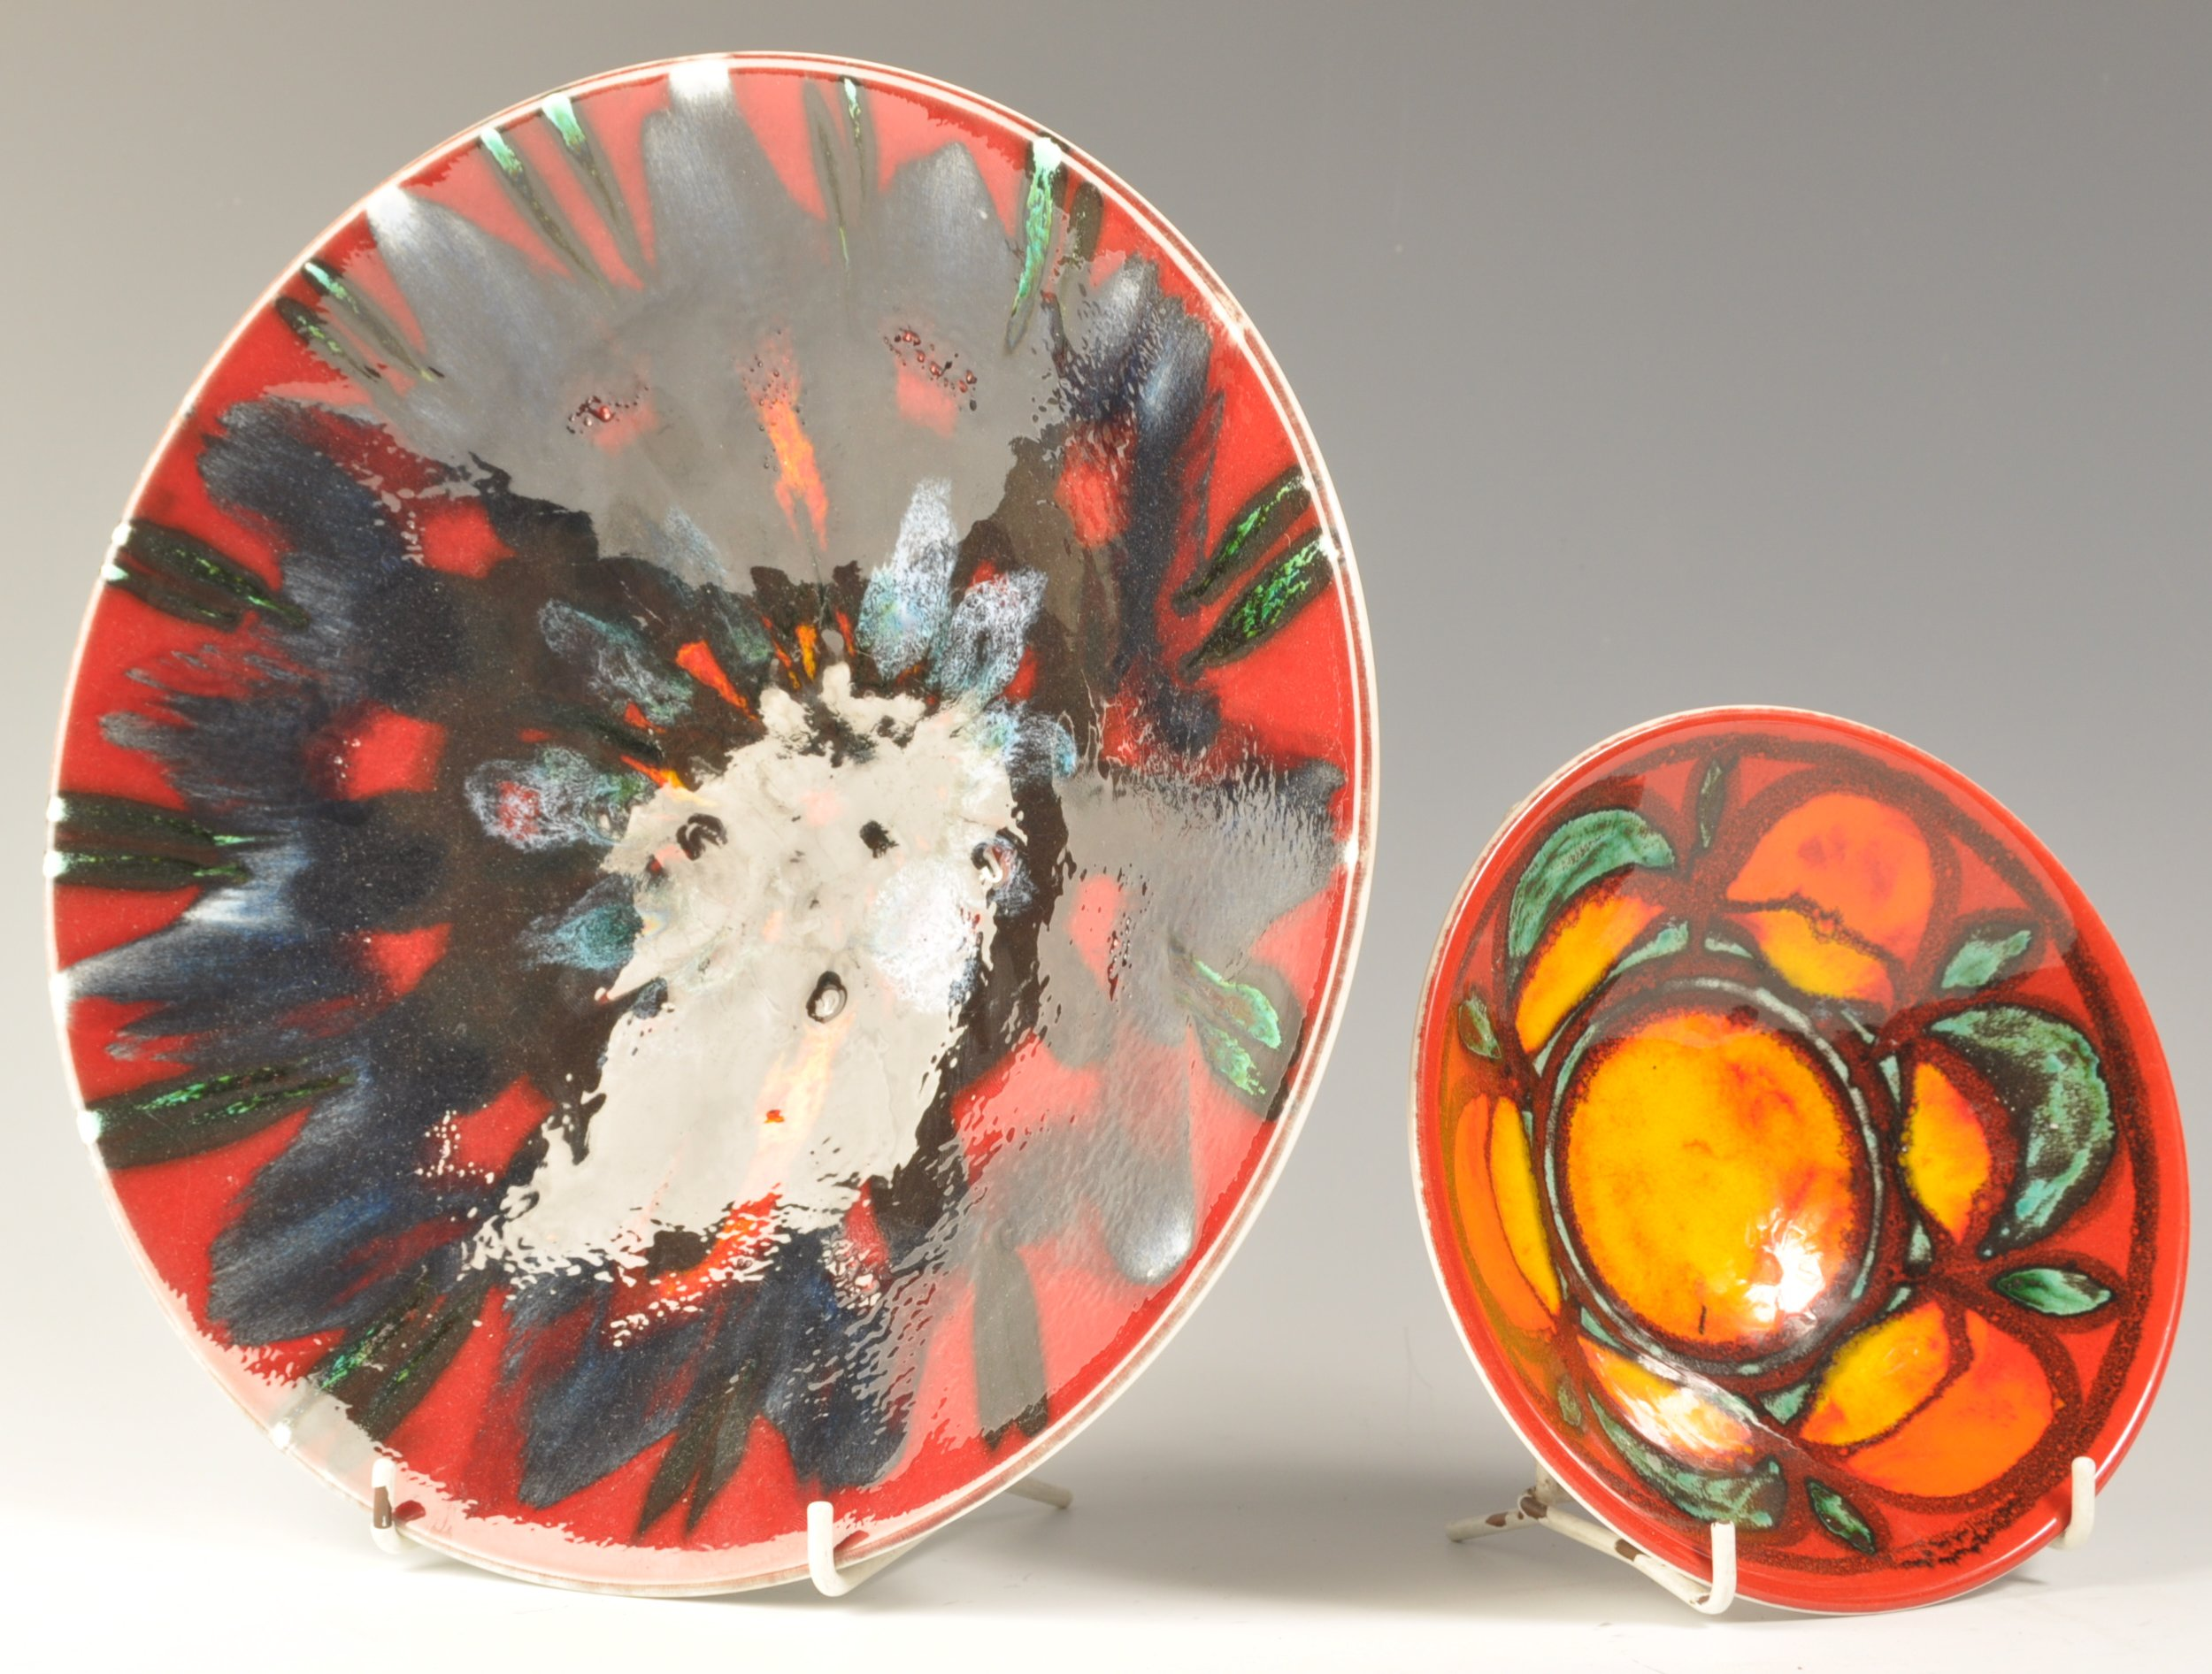 Lot 22 - POOLE DELPHIS 1970'S POTTERY BOWLS BY JANET LAIRD AND CAROL CUTLEr